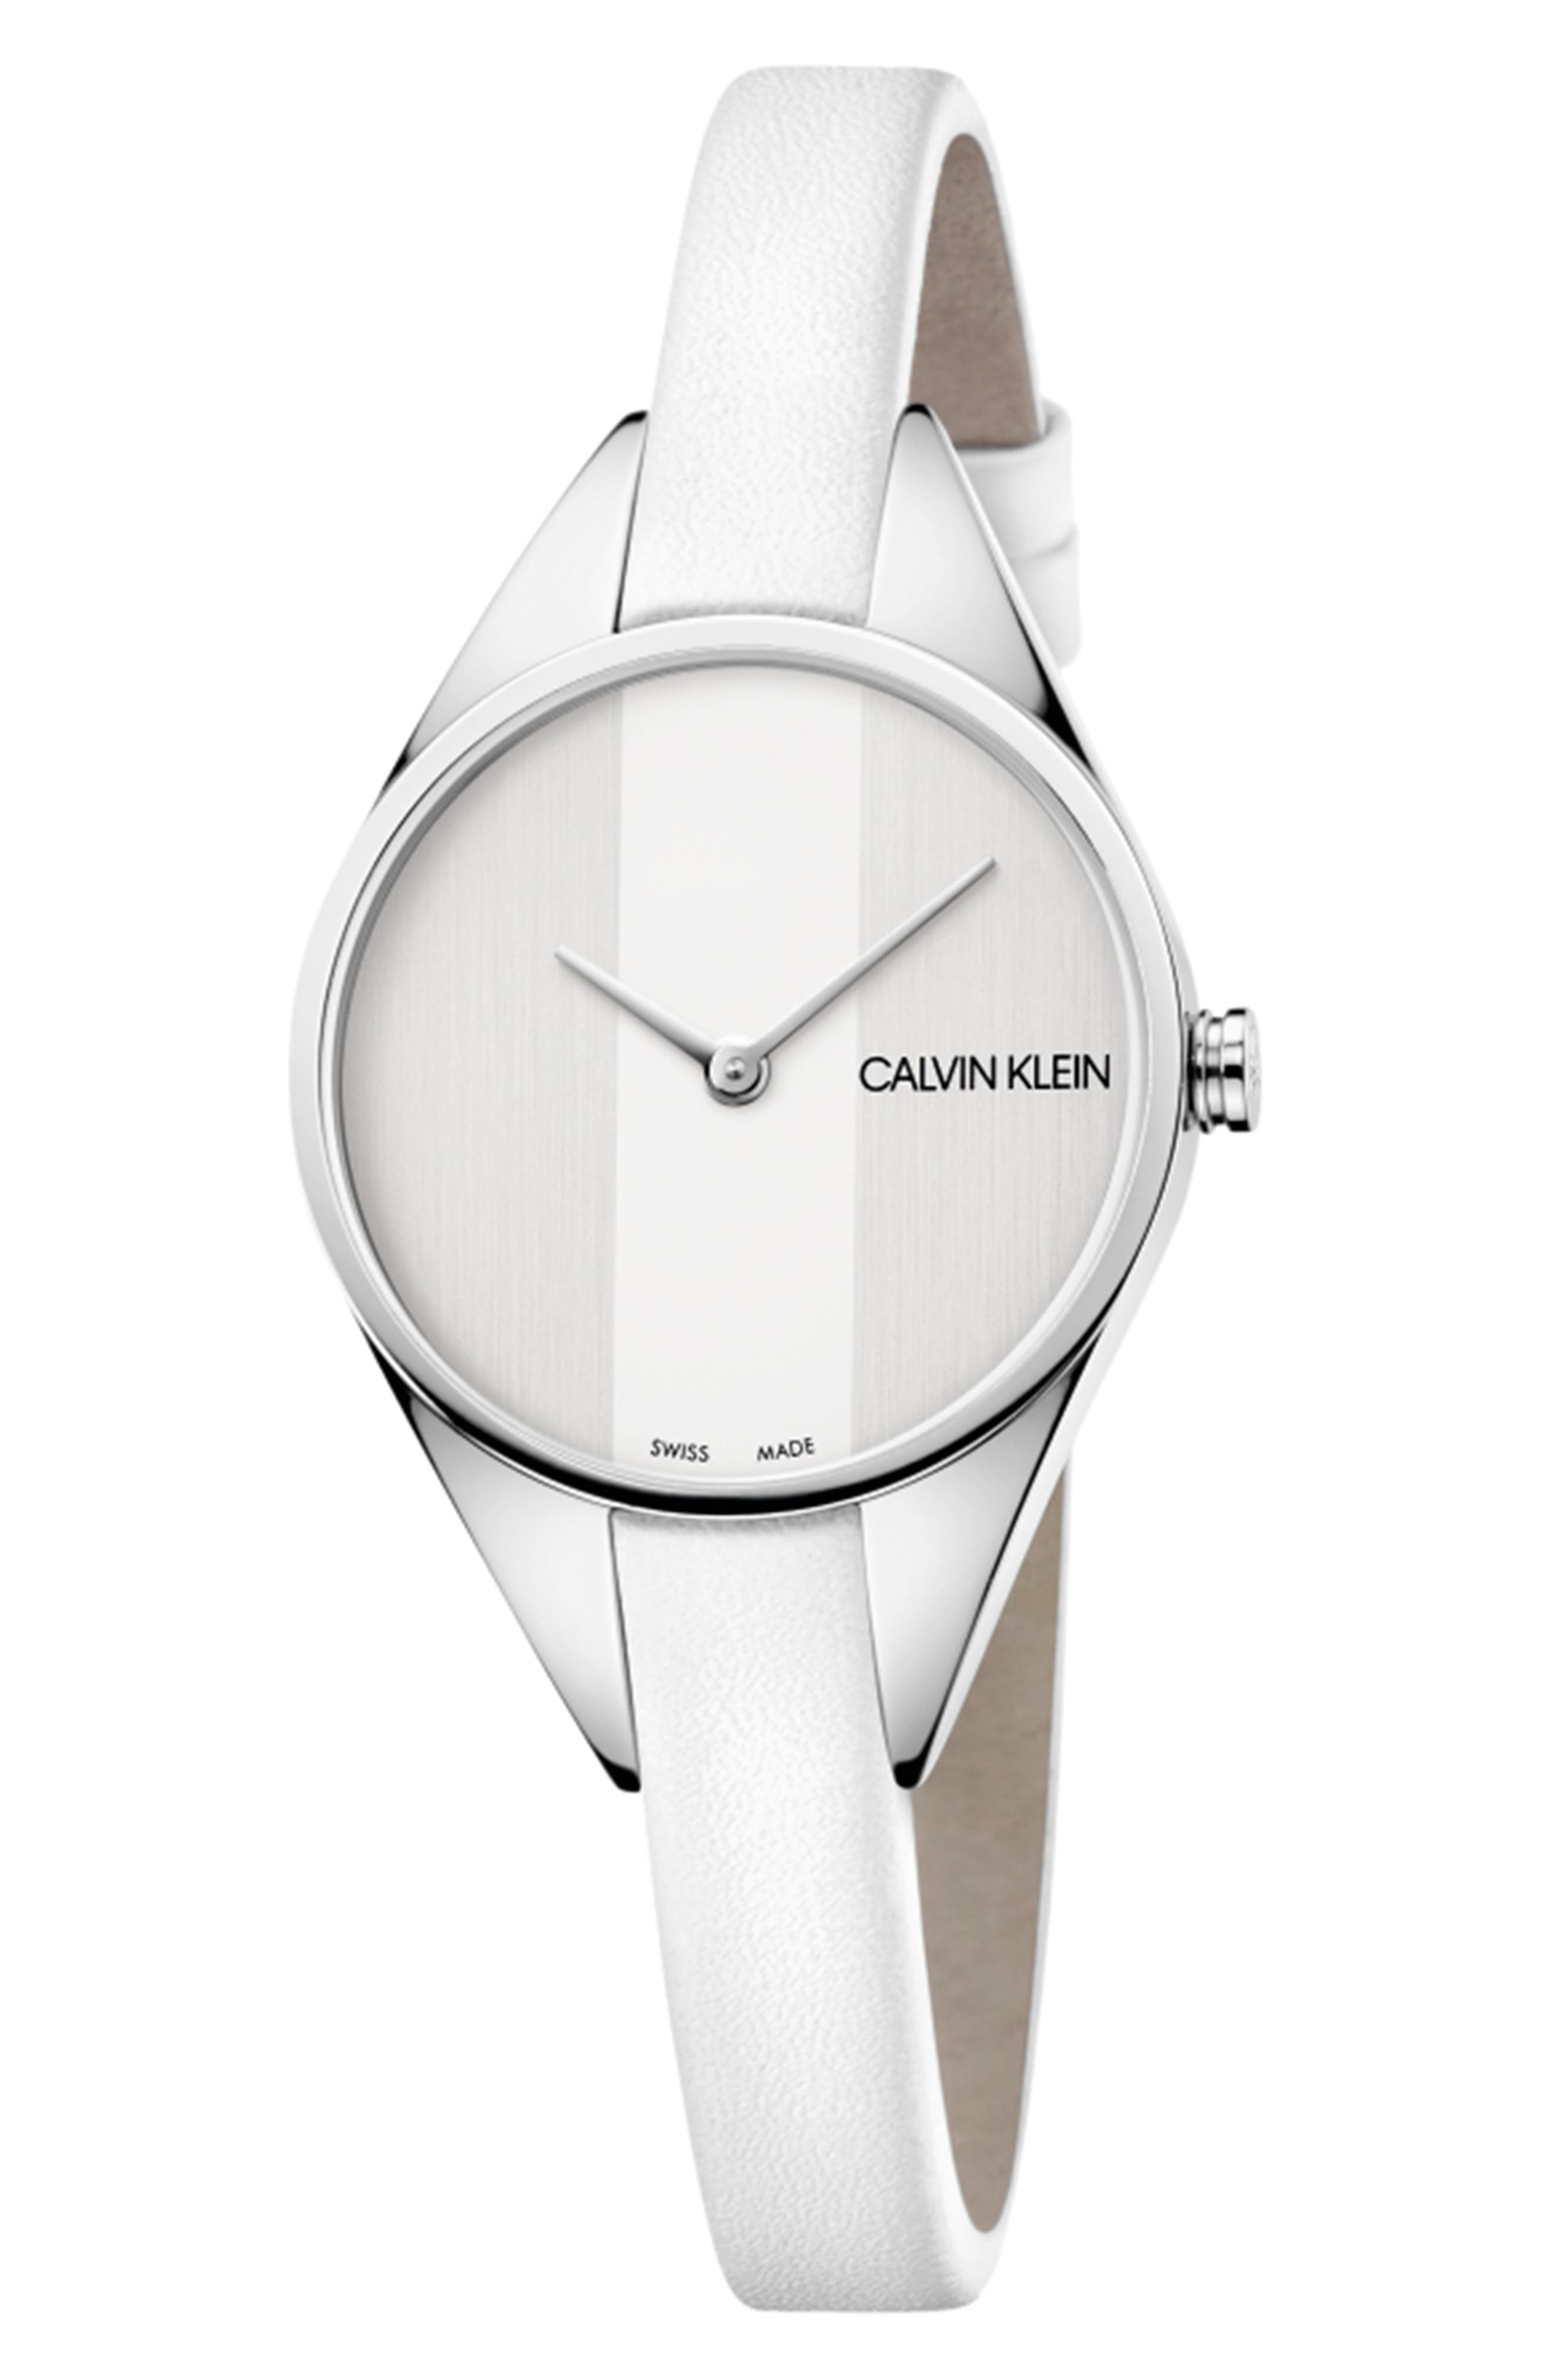 CALVIN KLEIN Achieve Rebel Leather Band Watch, 29mm, Main, color, WHITE/ SILVER